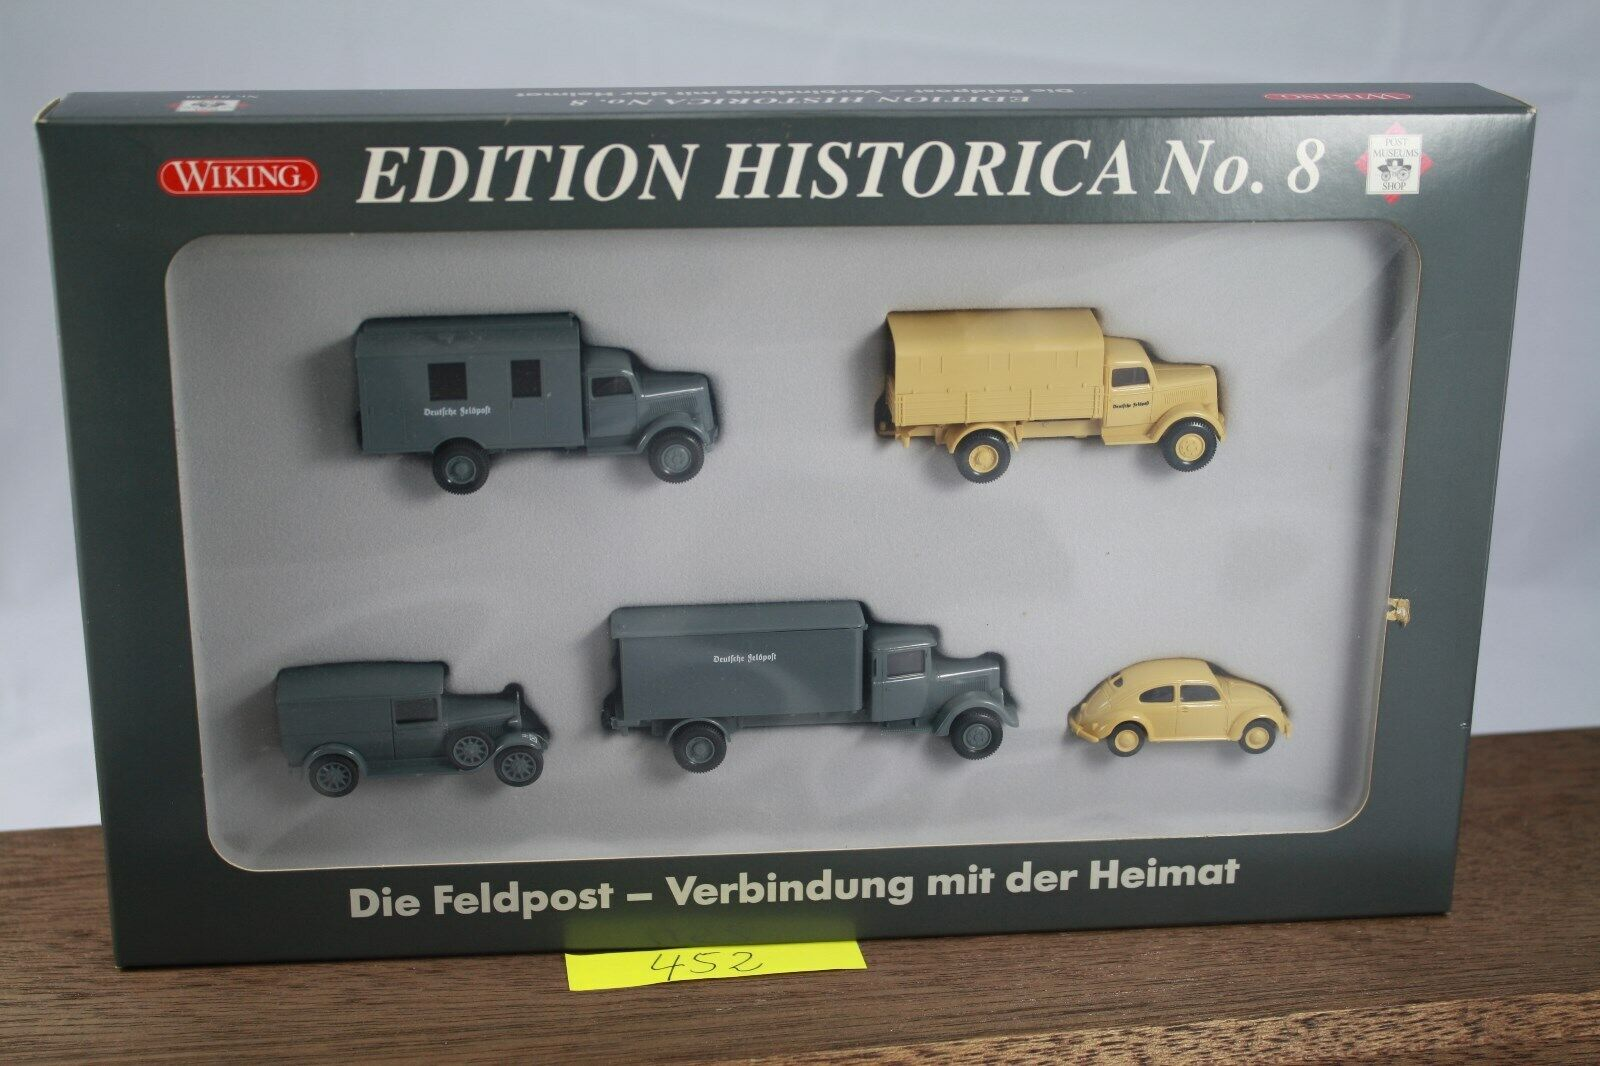 MDA Wiking set h0 PMS 81-30 Edition historica no 8 campo post embalaje original (452)